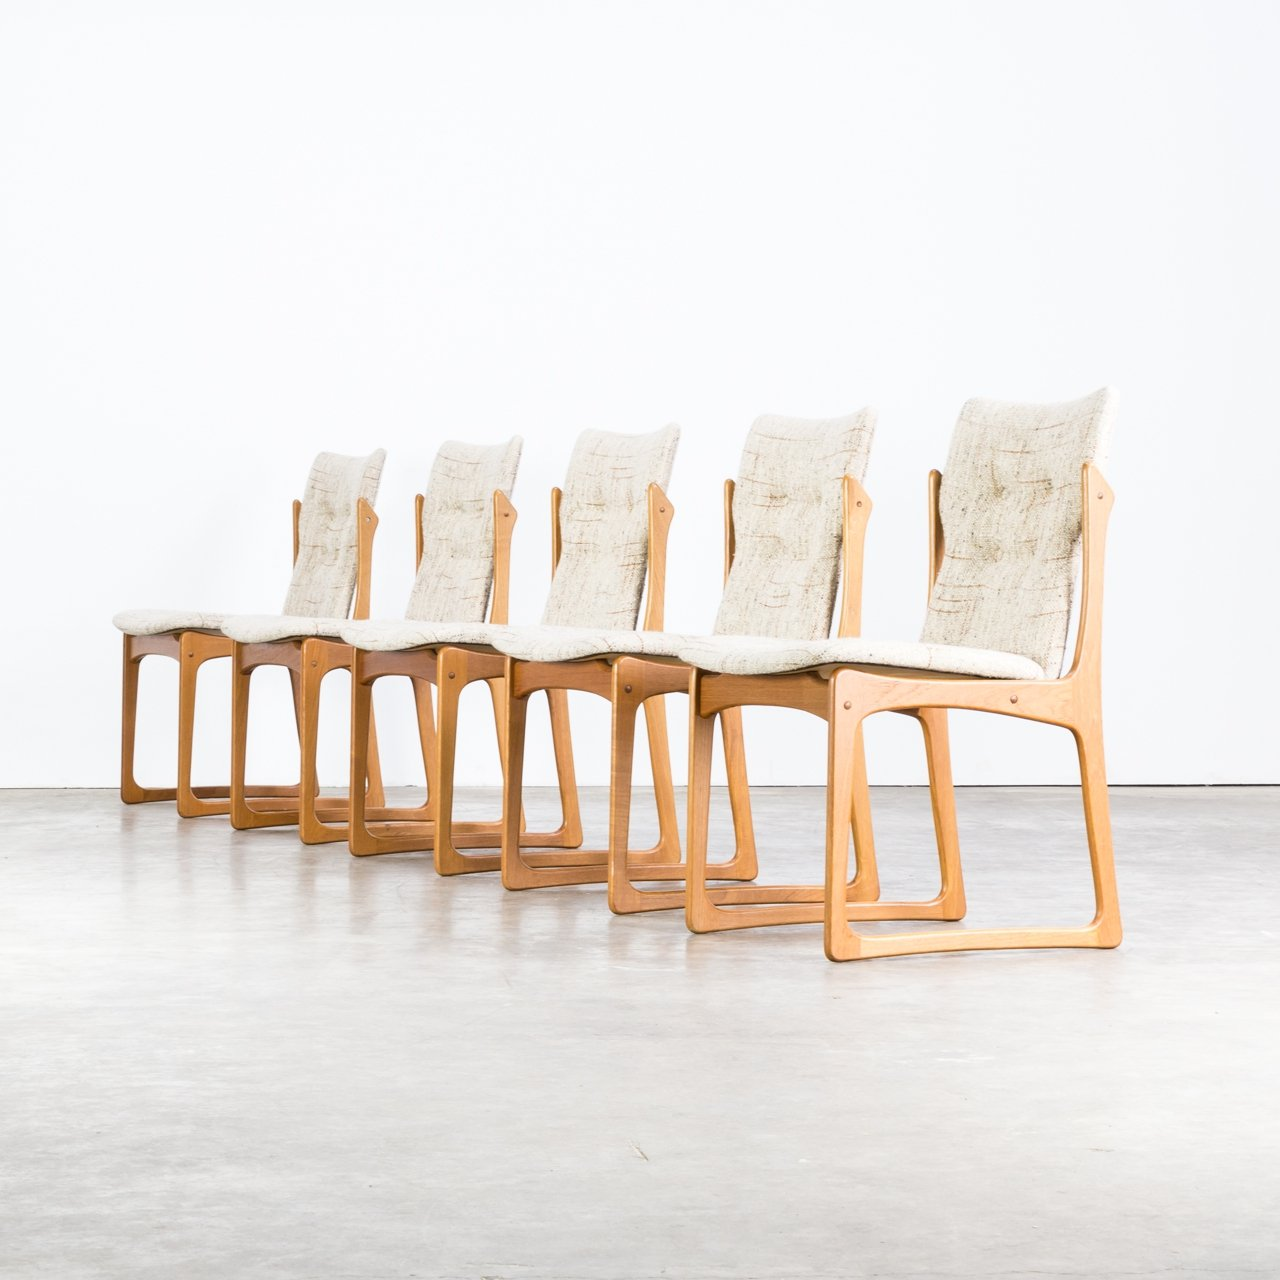 Peachy Set Of 5 Dining Room Chairs For Vamdrup Stolefabrik Denmark Beatyapartments Chair Design Images Beatyapartmentscom